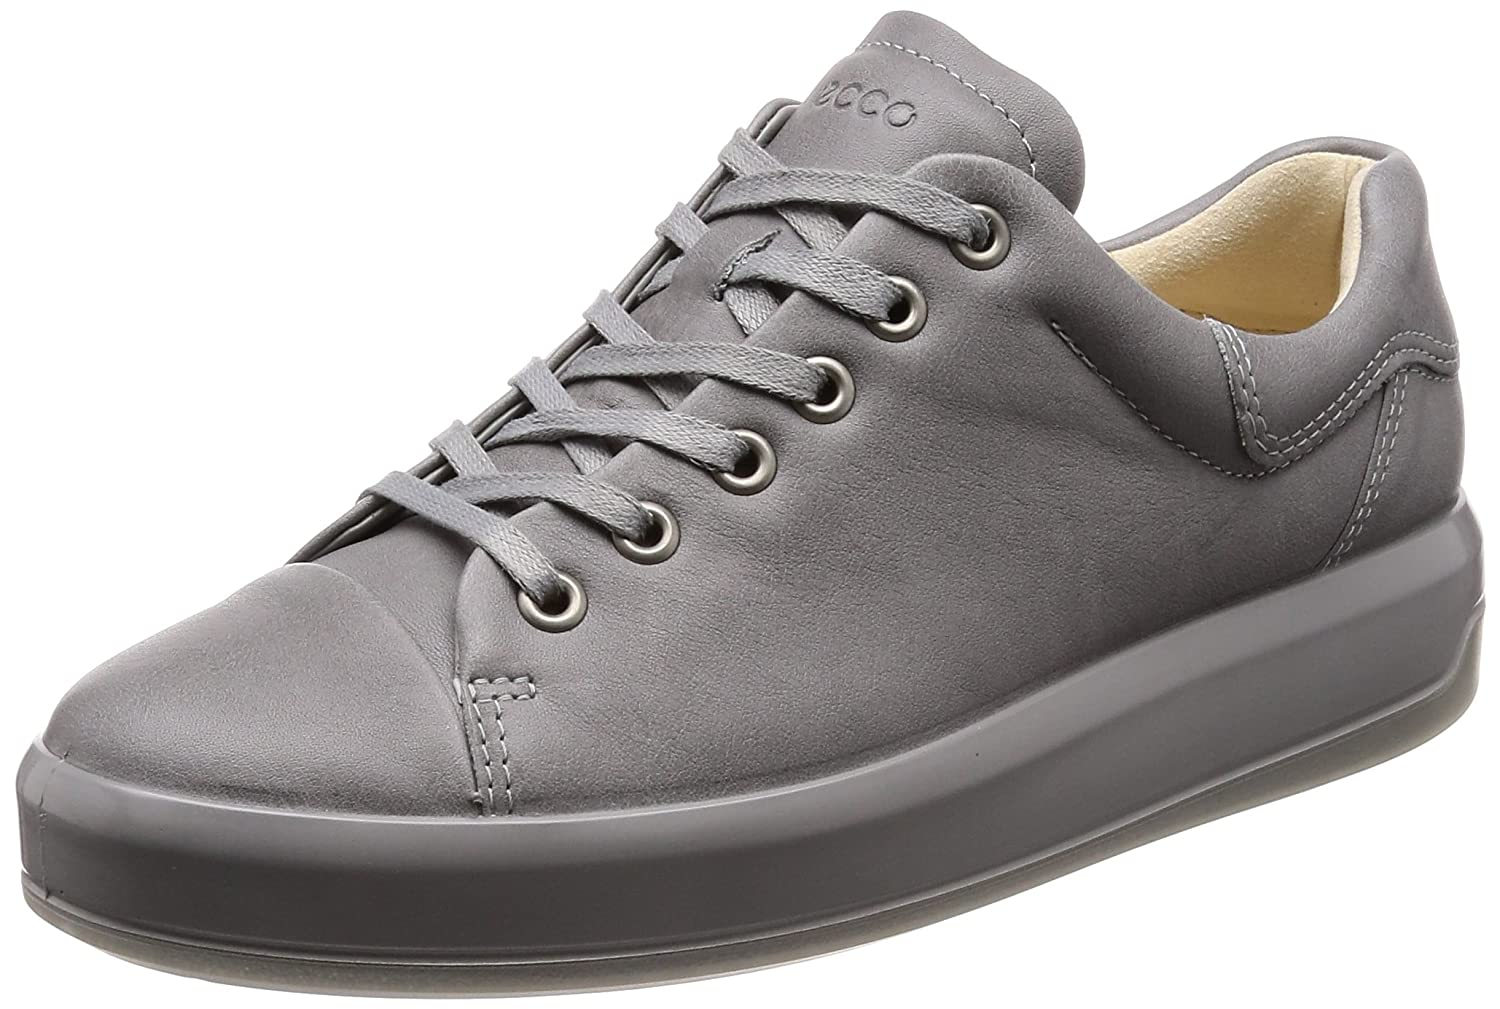 ECCO Women's Soft 9 Tie Fashion Sneaker B07114R948 38 EU/7-7.5 M US|Wild Dove